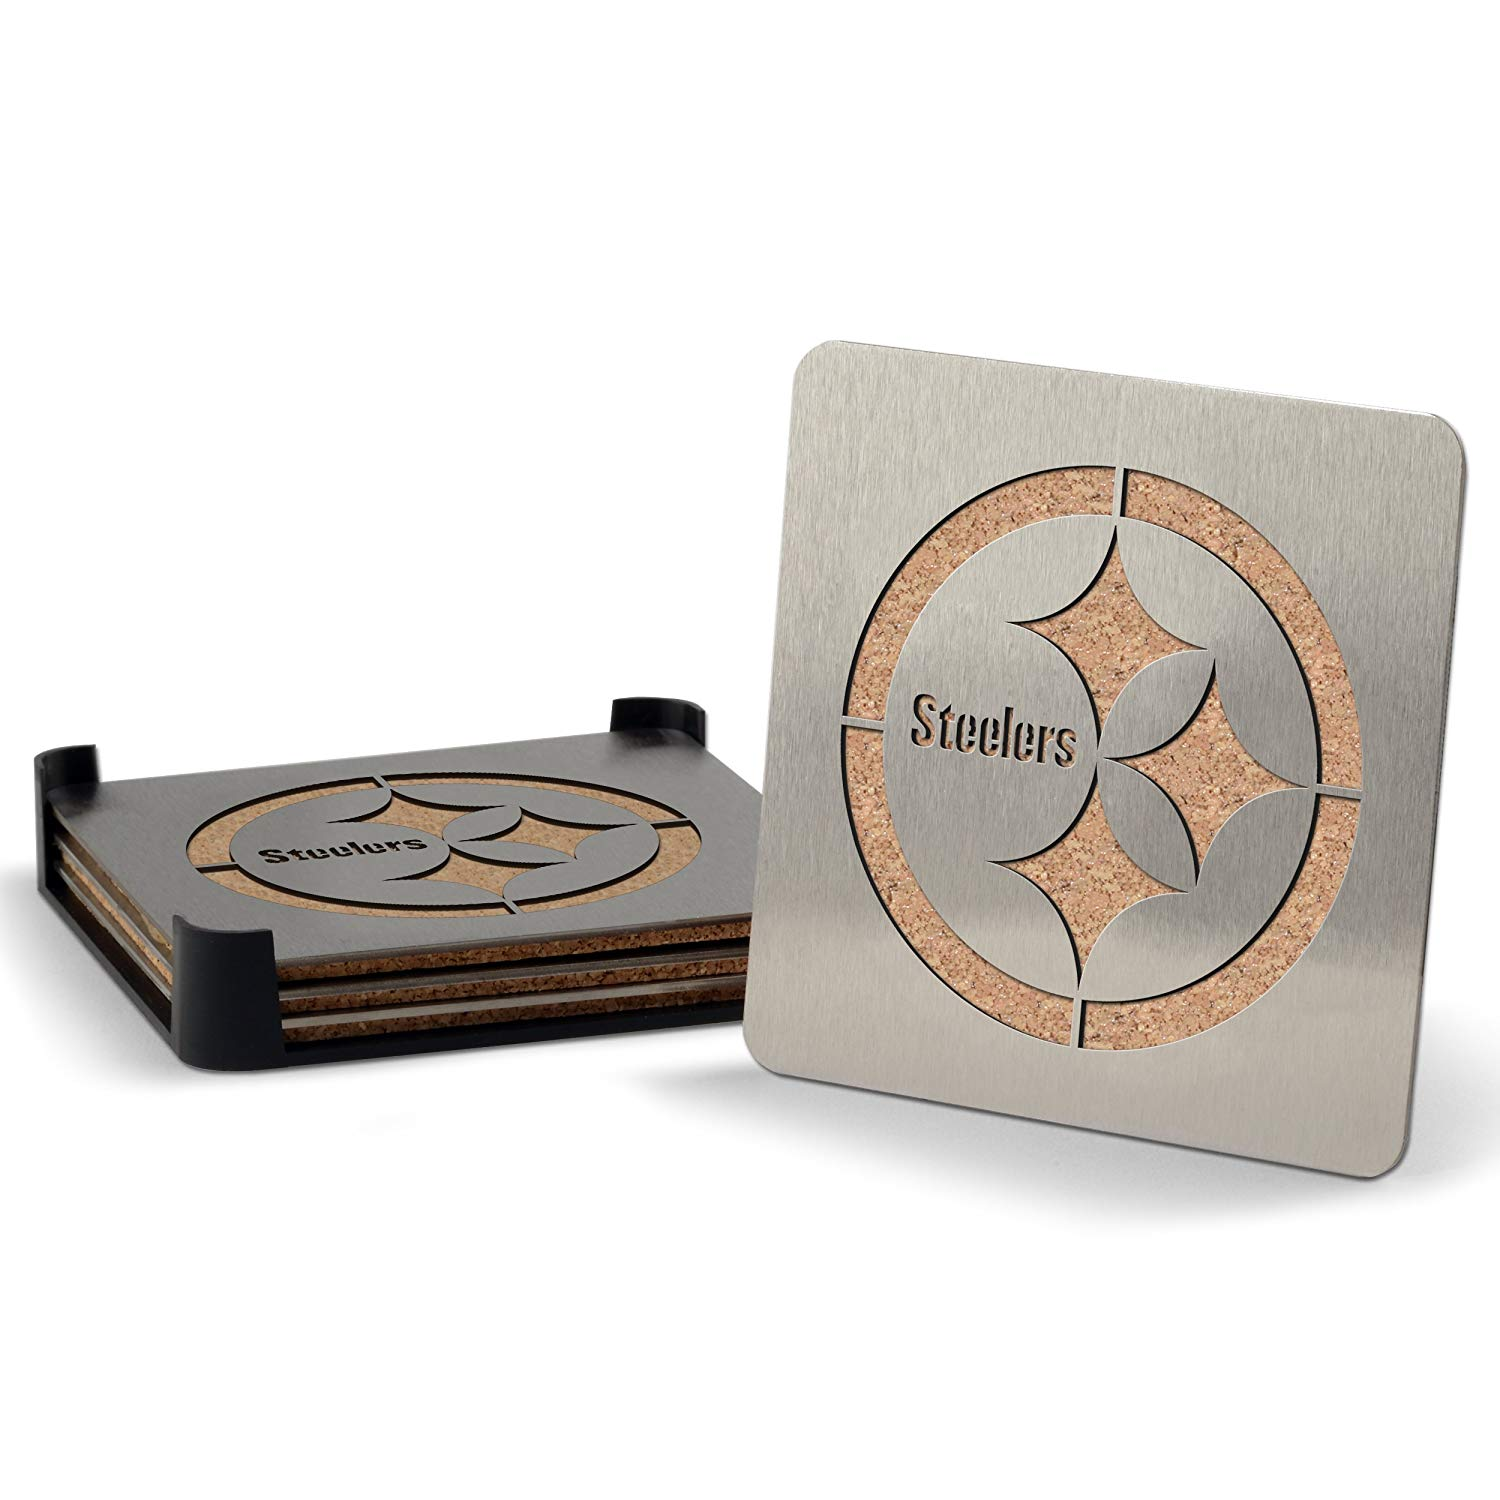 Steelers Stainless Steel Coasters